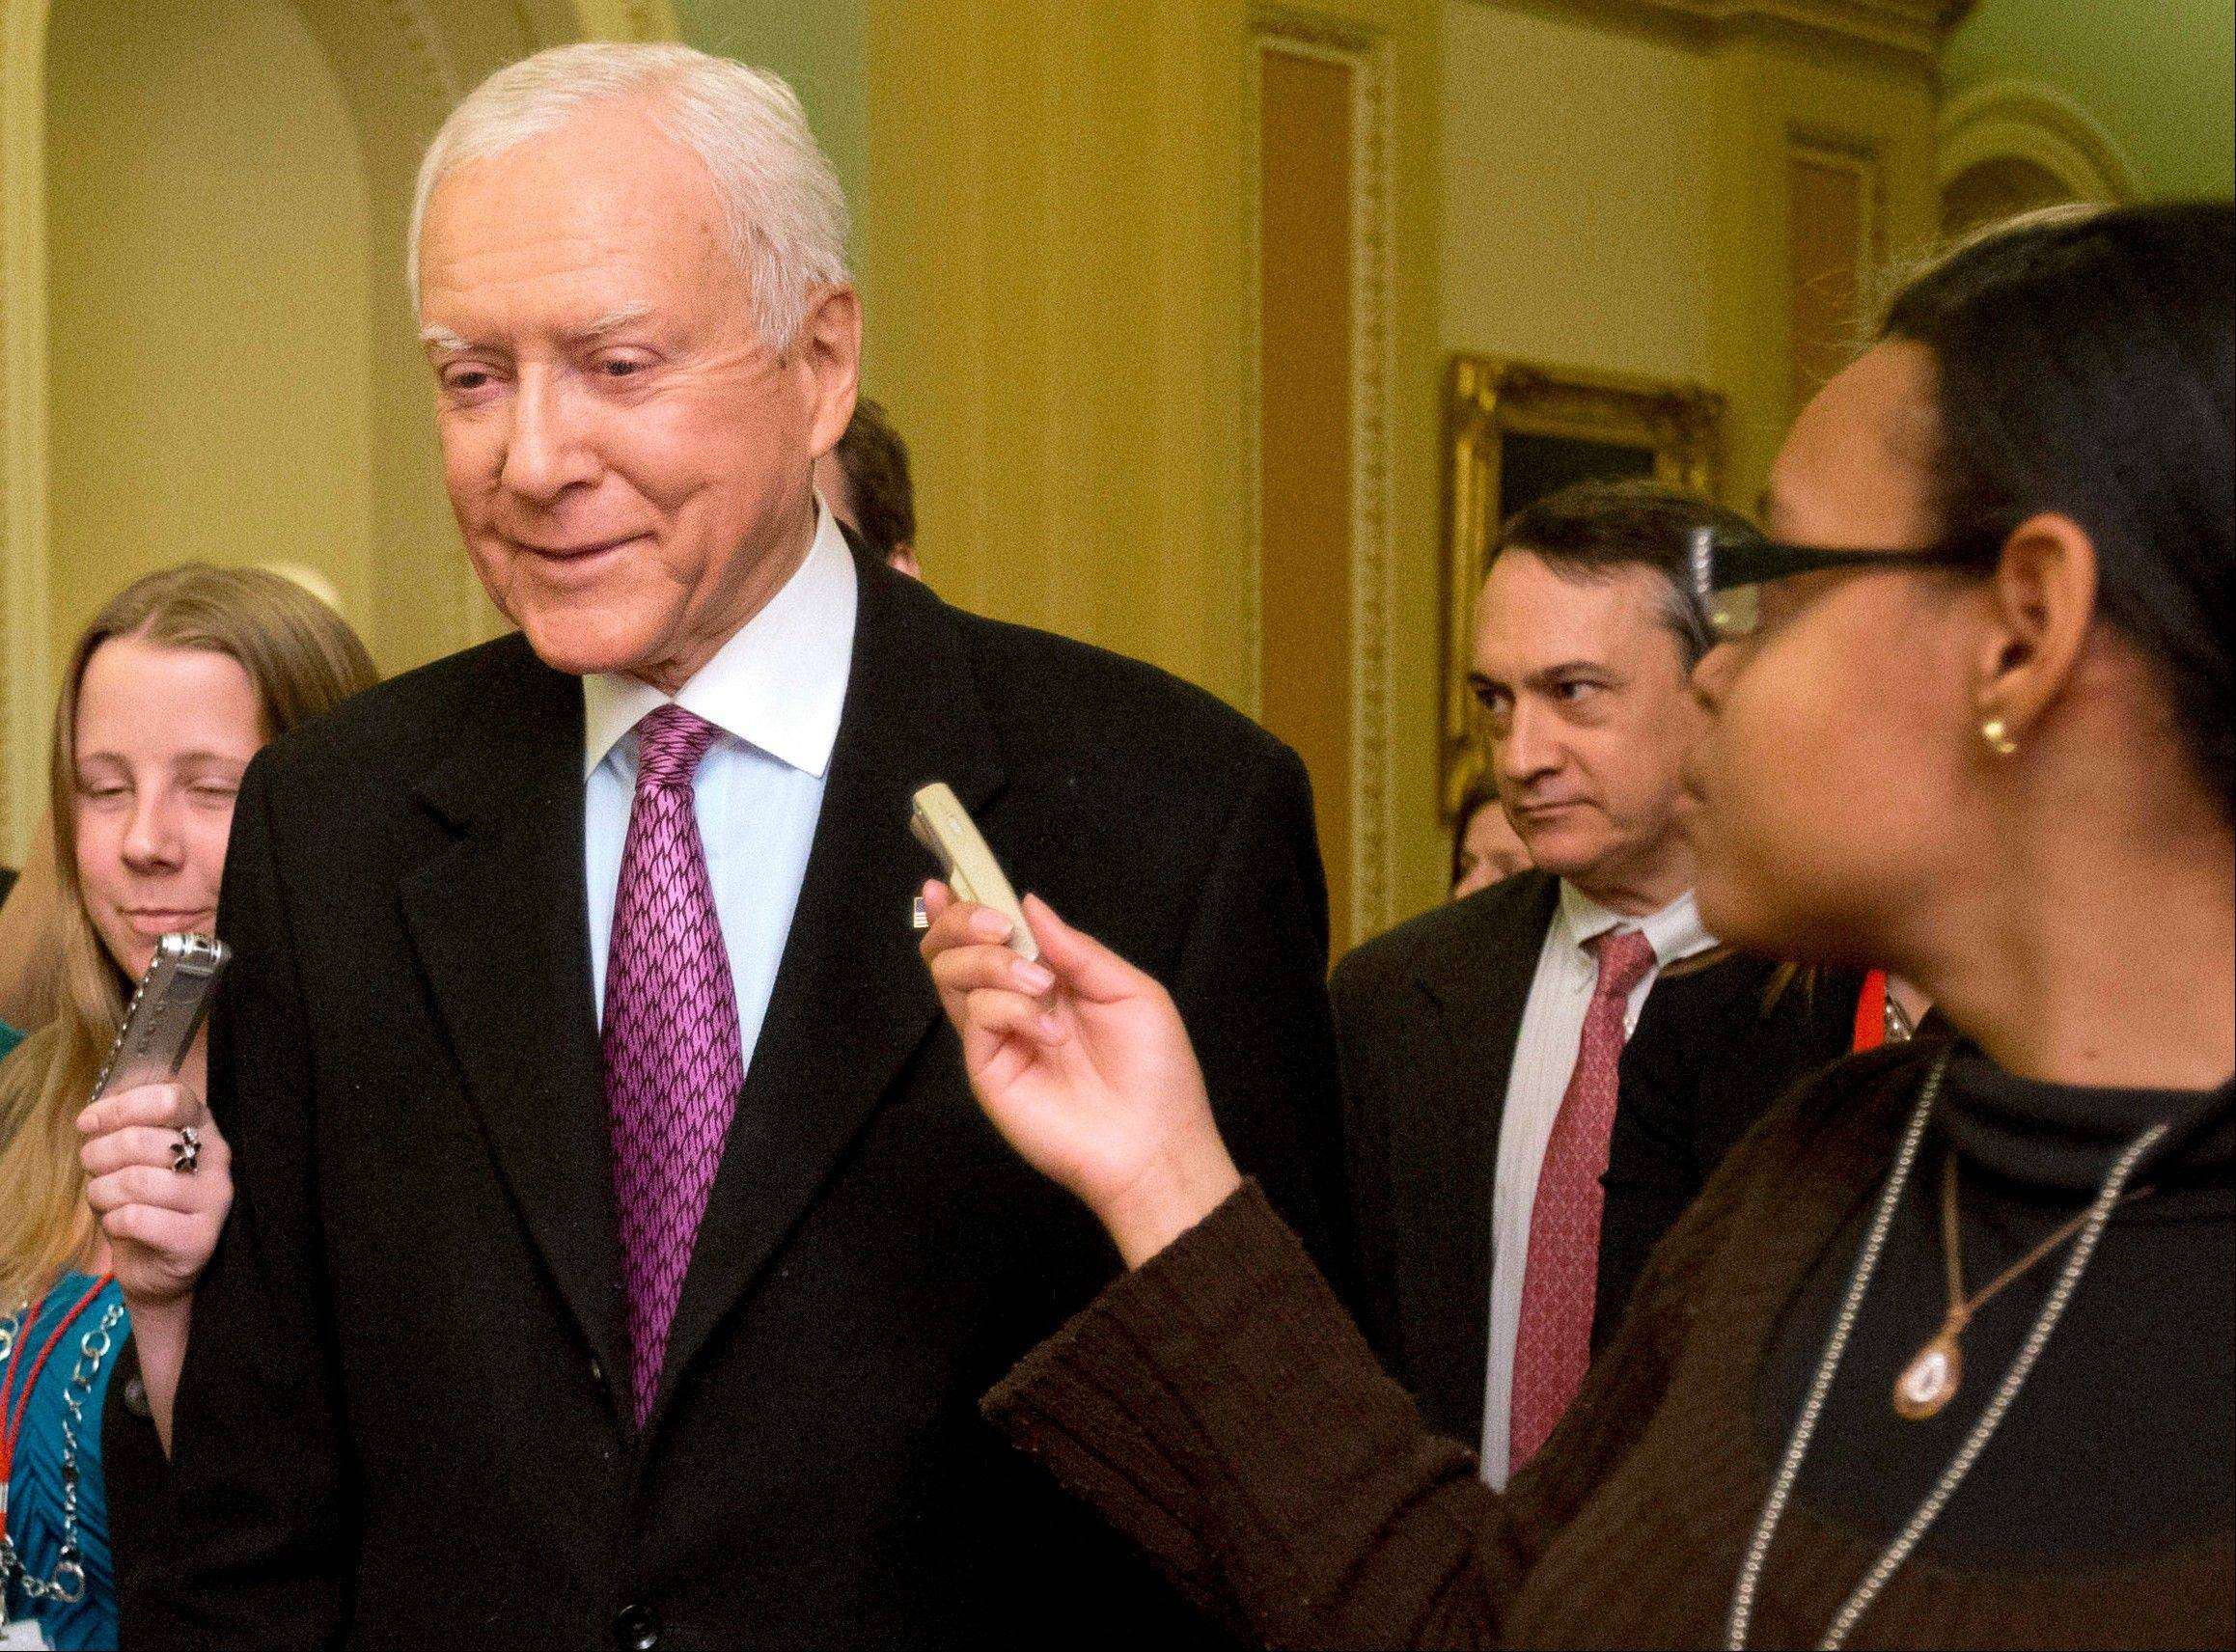 Leading senators working to resolve a key issue on immigration legislation, including Orrin Hatch, R-Utah, have agreed to a compromise covering expansion of a high-tech visa program, officials said Tuesday, resolving one of two major hurdles to committee passage of the landmark bill.